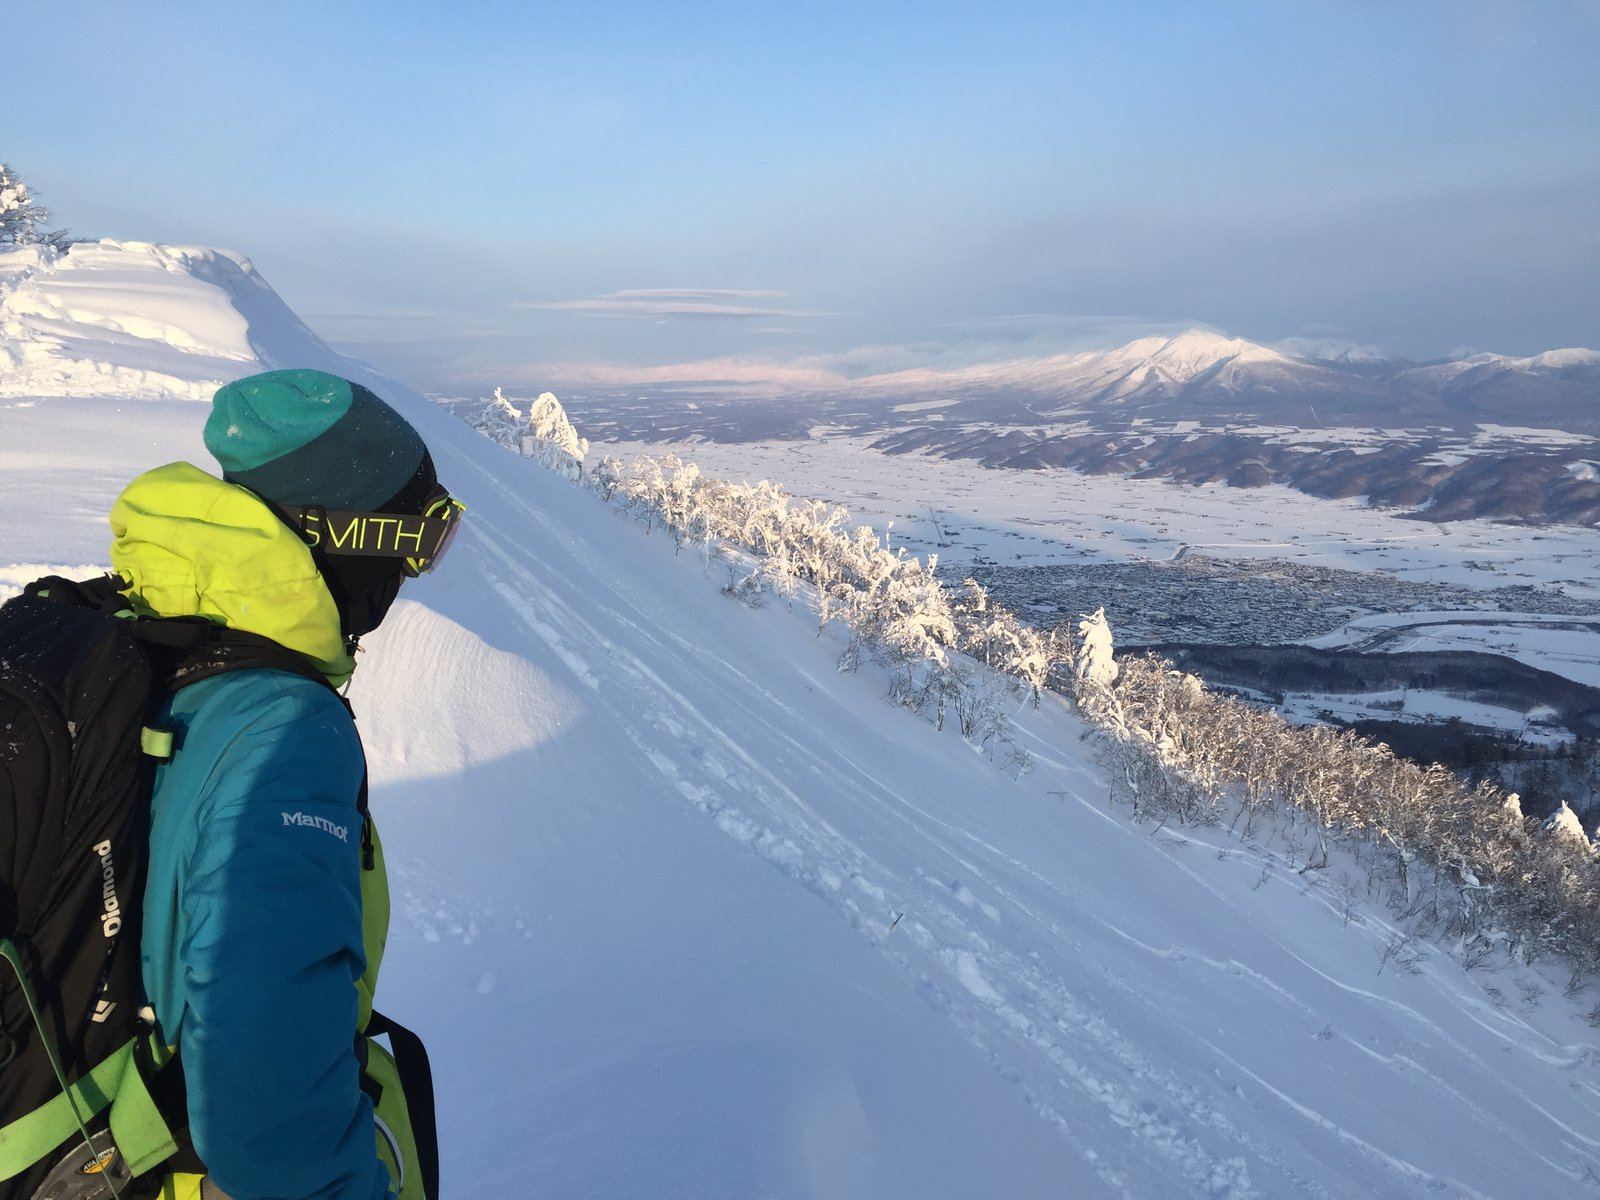 Scouting Lines off Nishi Furano